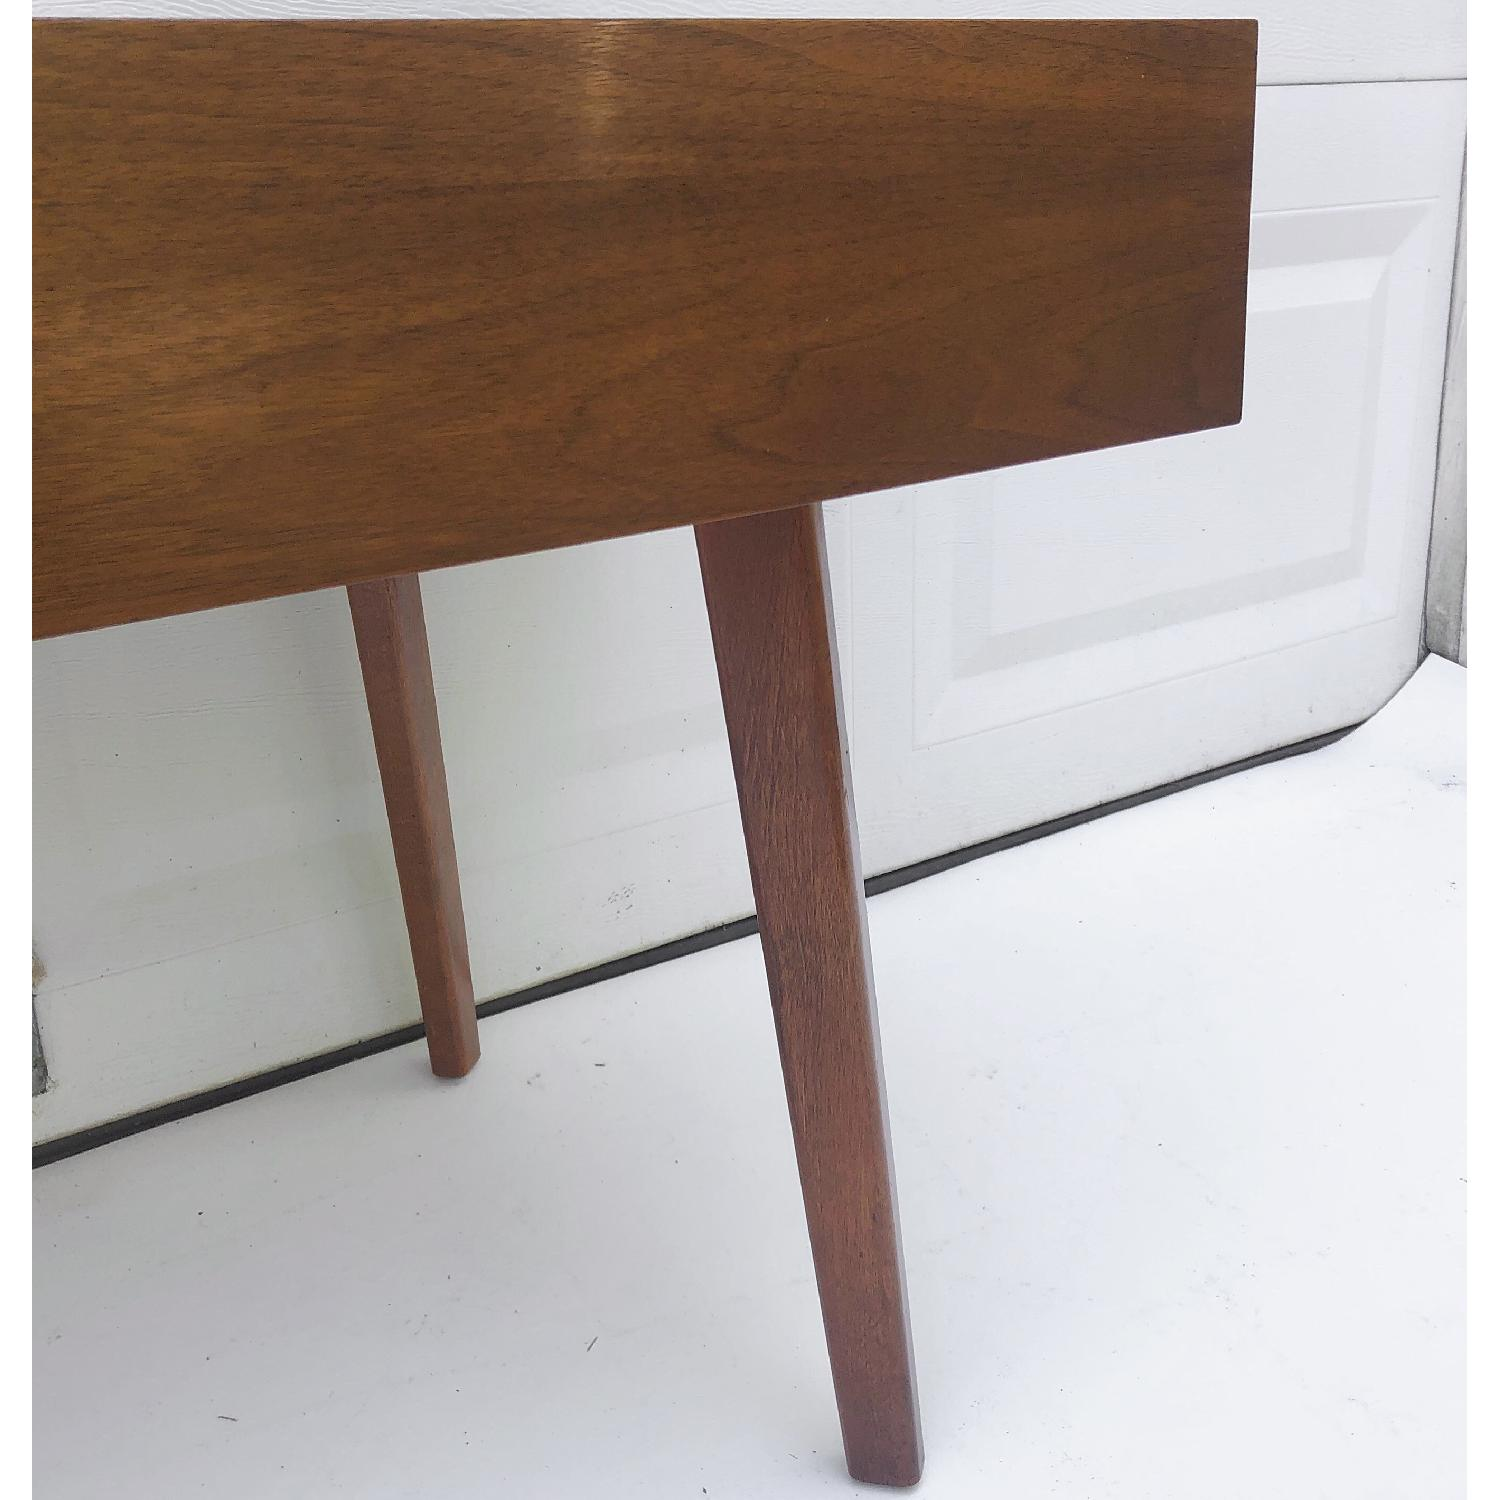 Herman Miller Side Tables by George Nelson - image-9